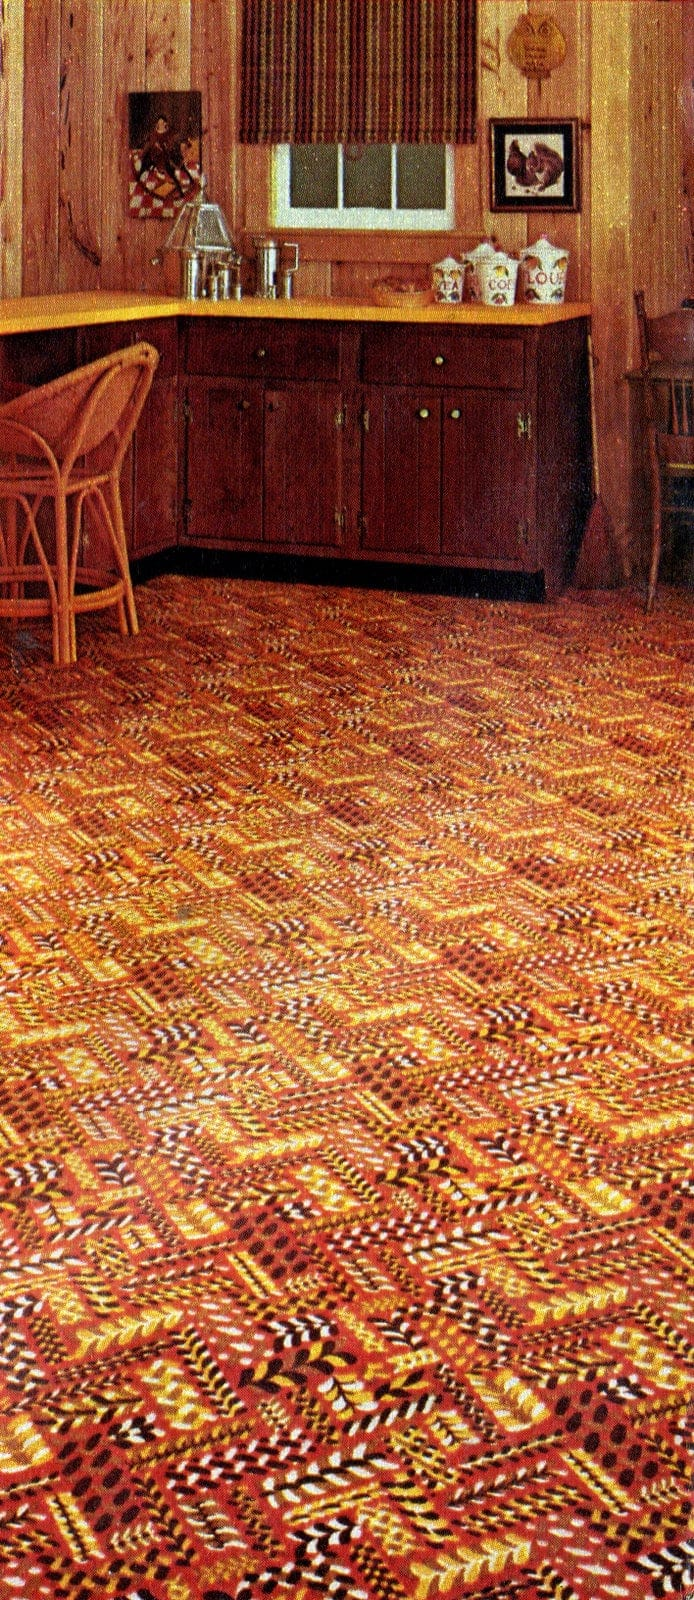 Kitchen carpeting for the home from 1973 (1)